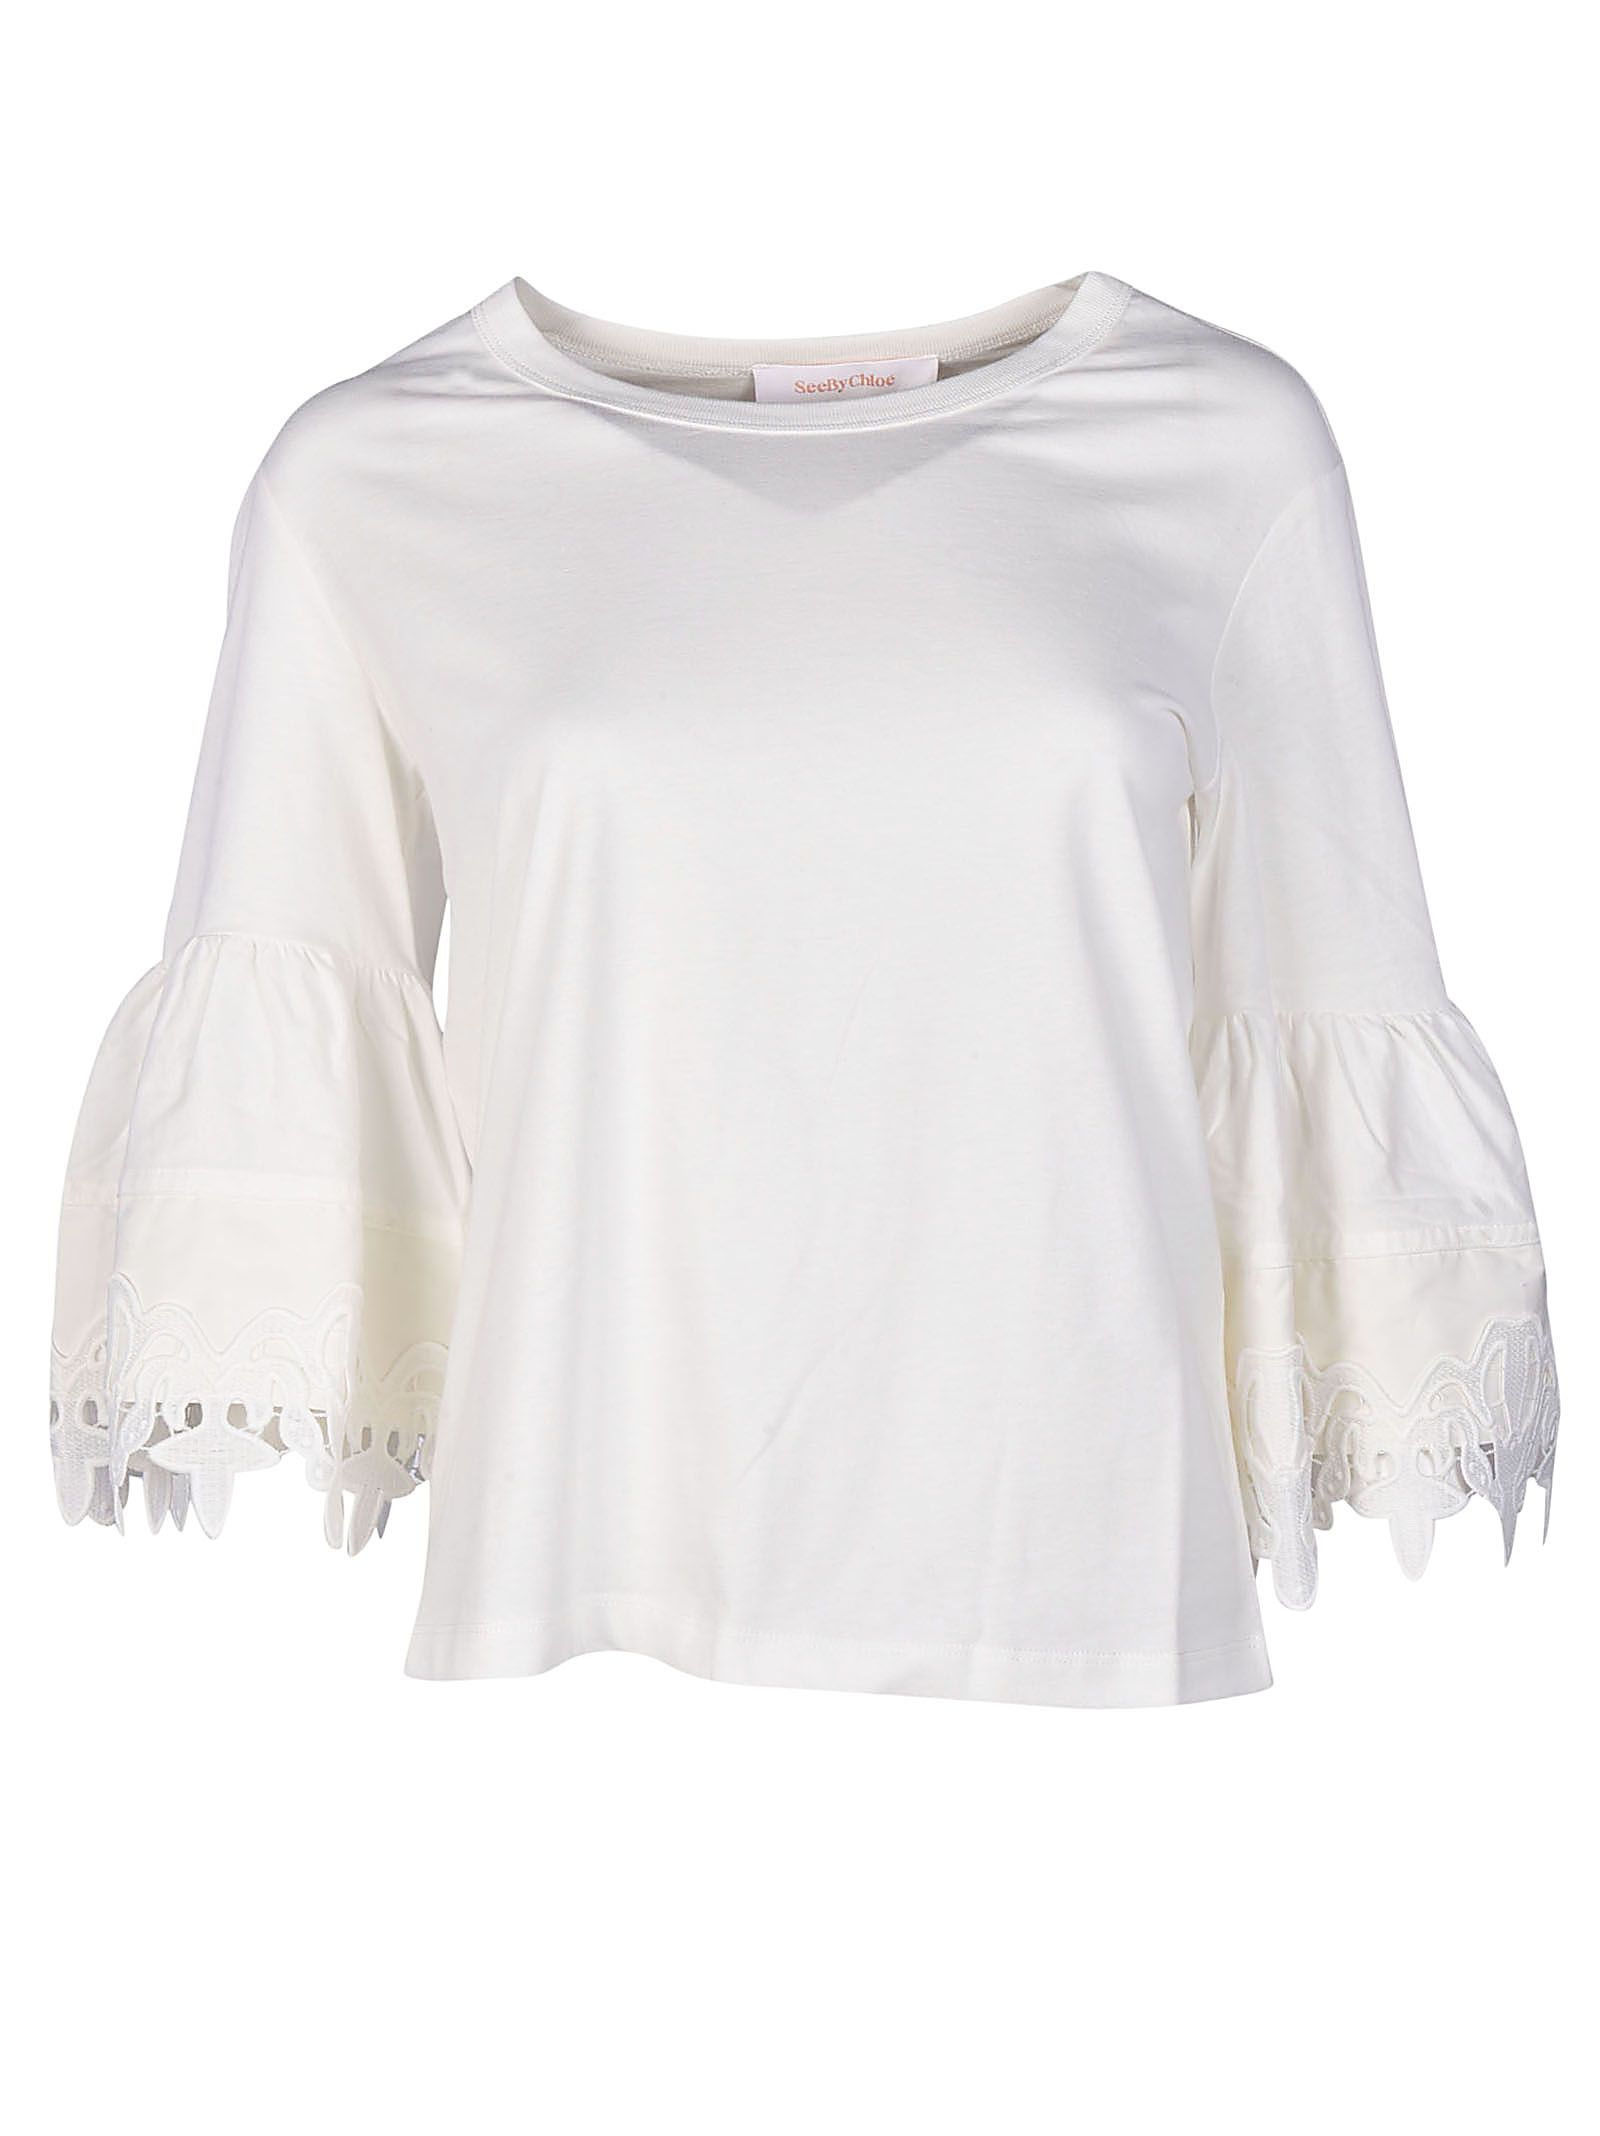 See By Chloé Lace Trim Bell Sleeve T-shirt